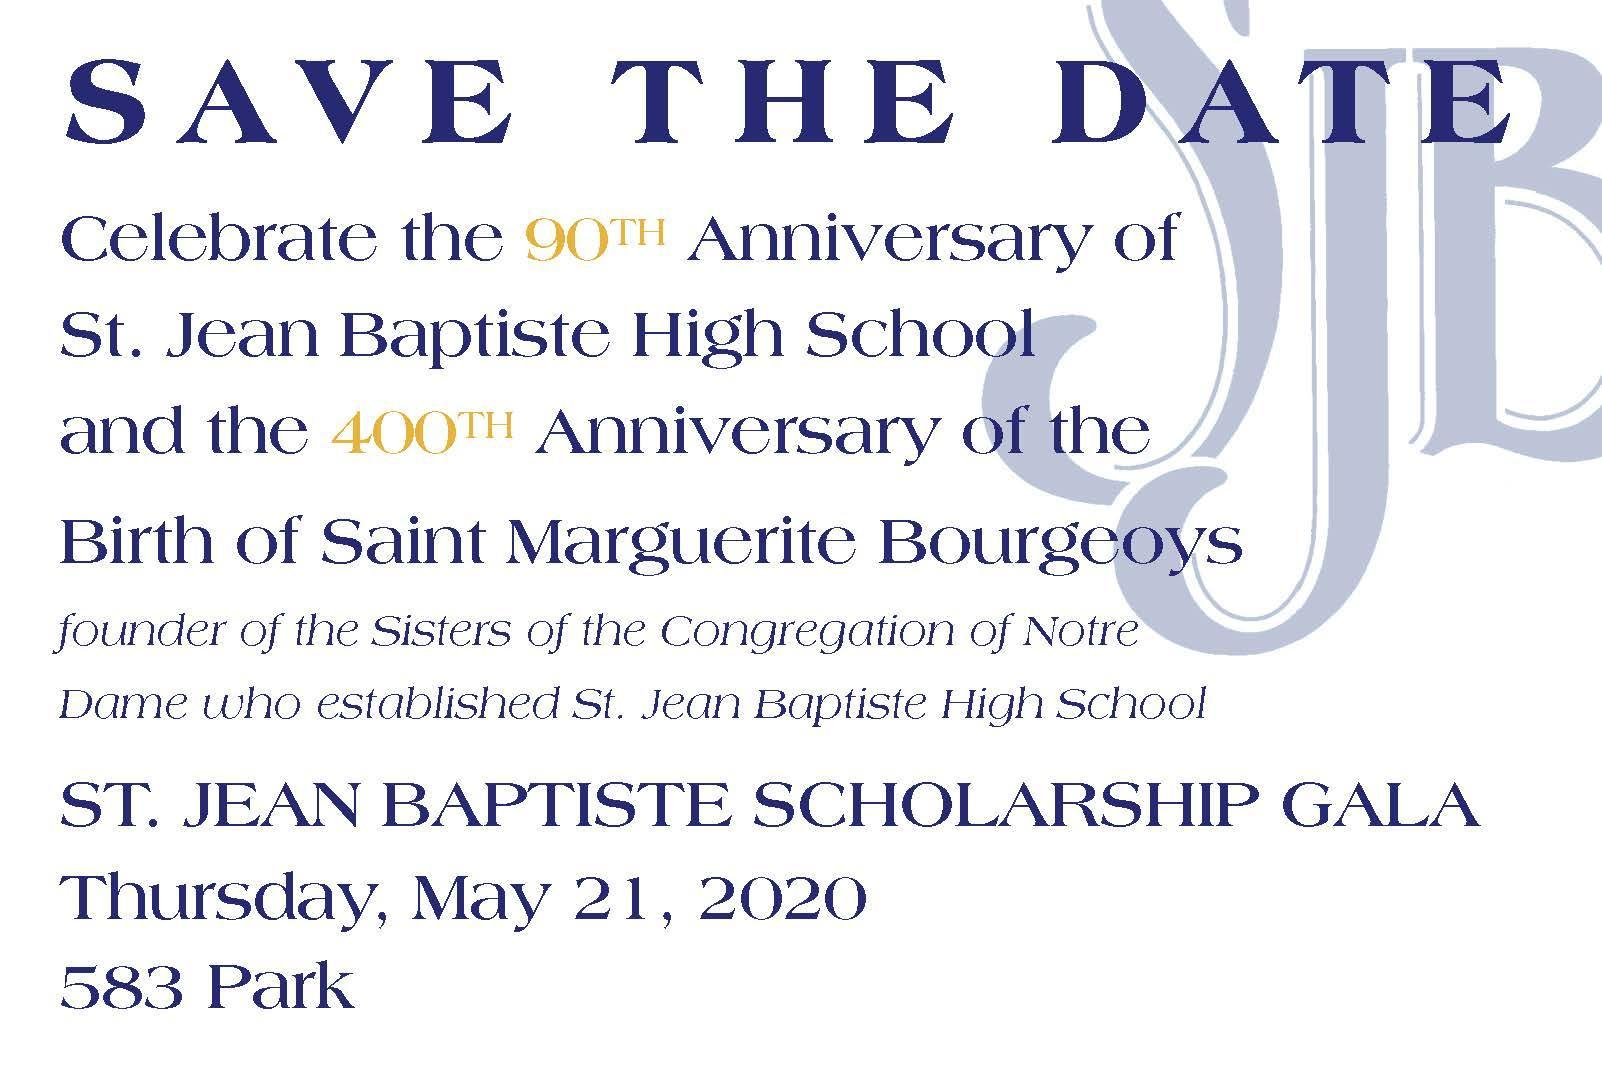 Save the date blue text on white background